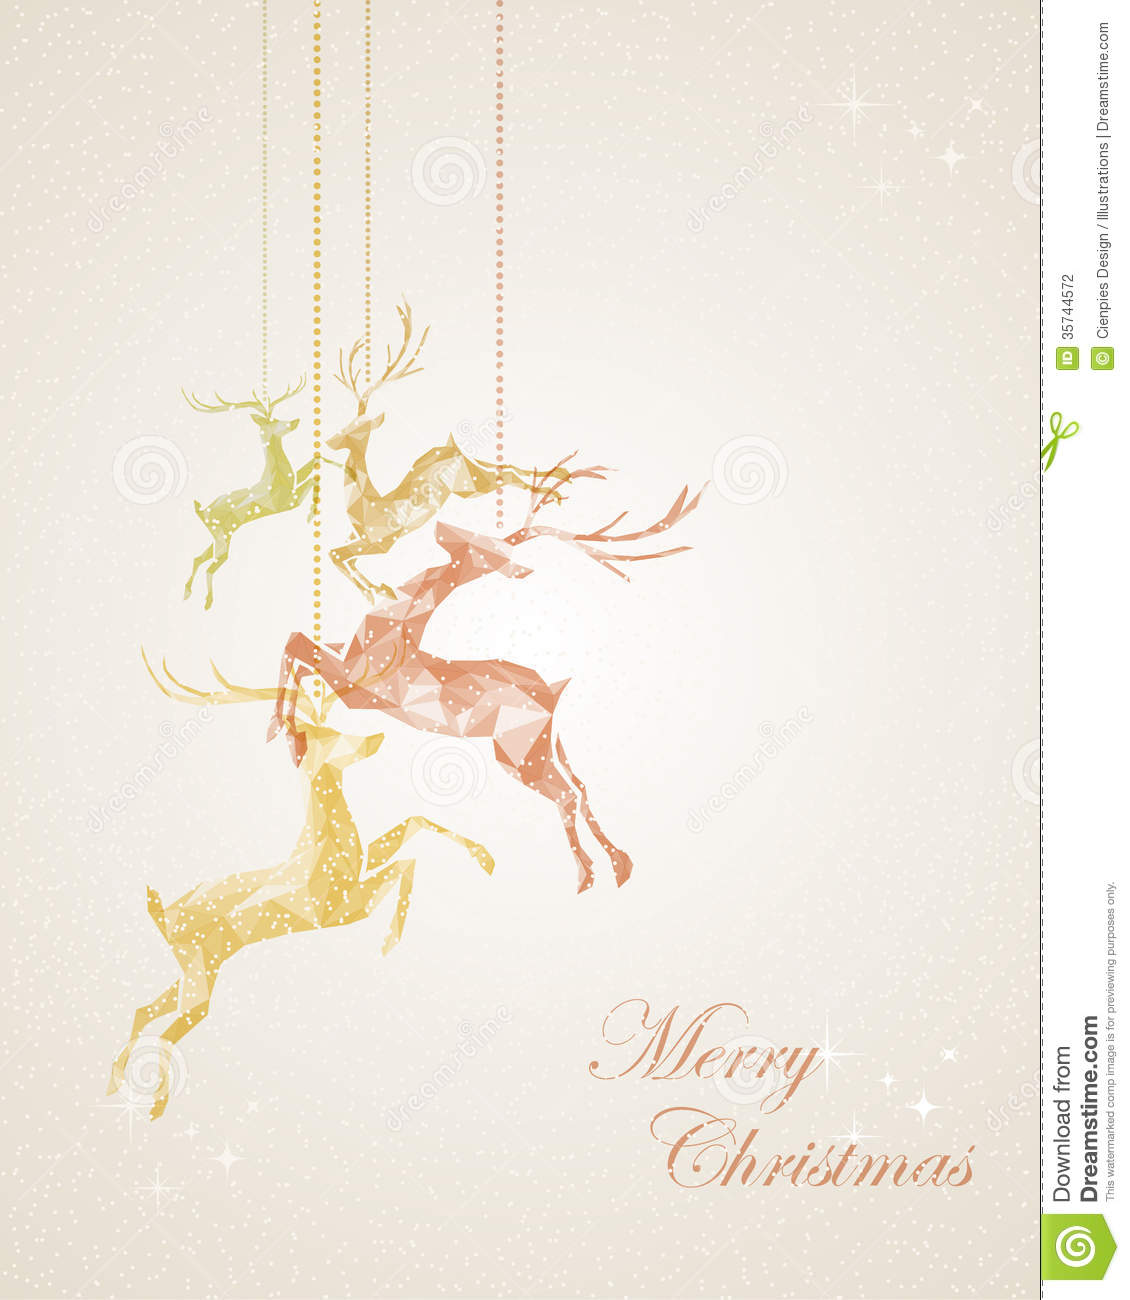 Merry Christmas Abstract Hanging Reindeer Greeting Stock Photography ...